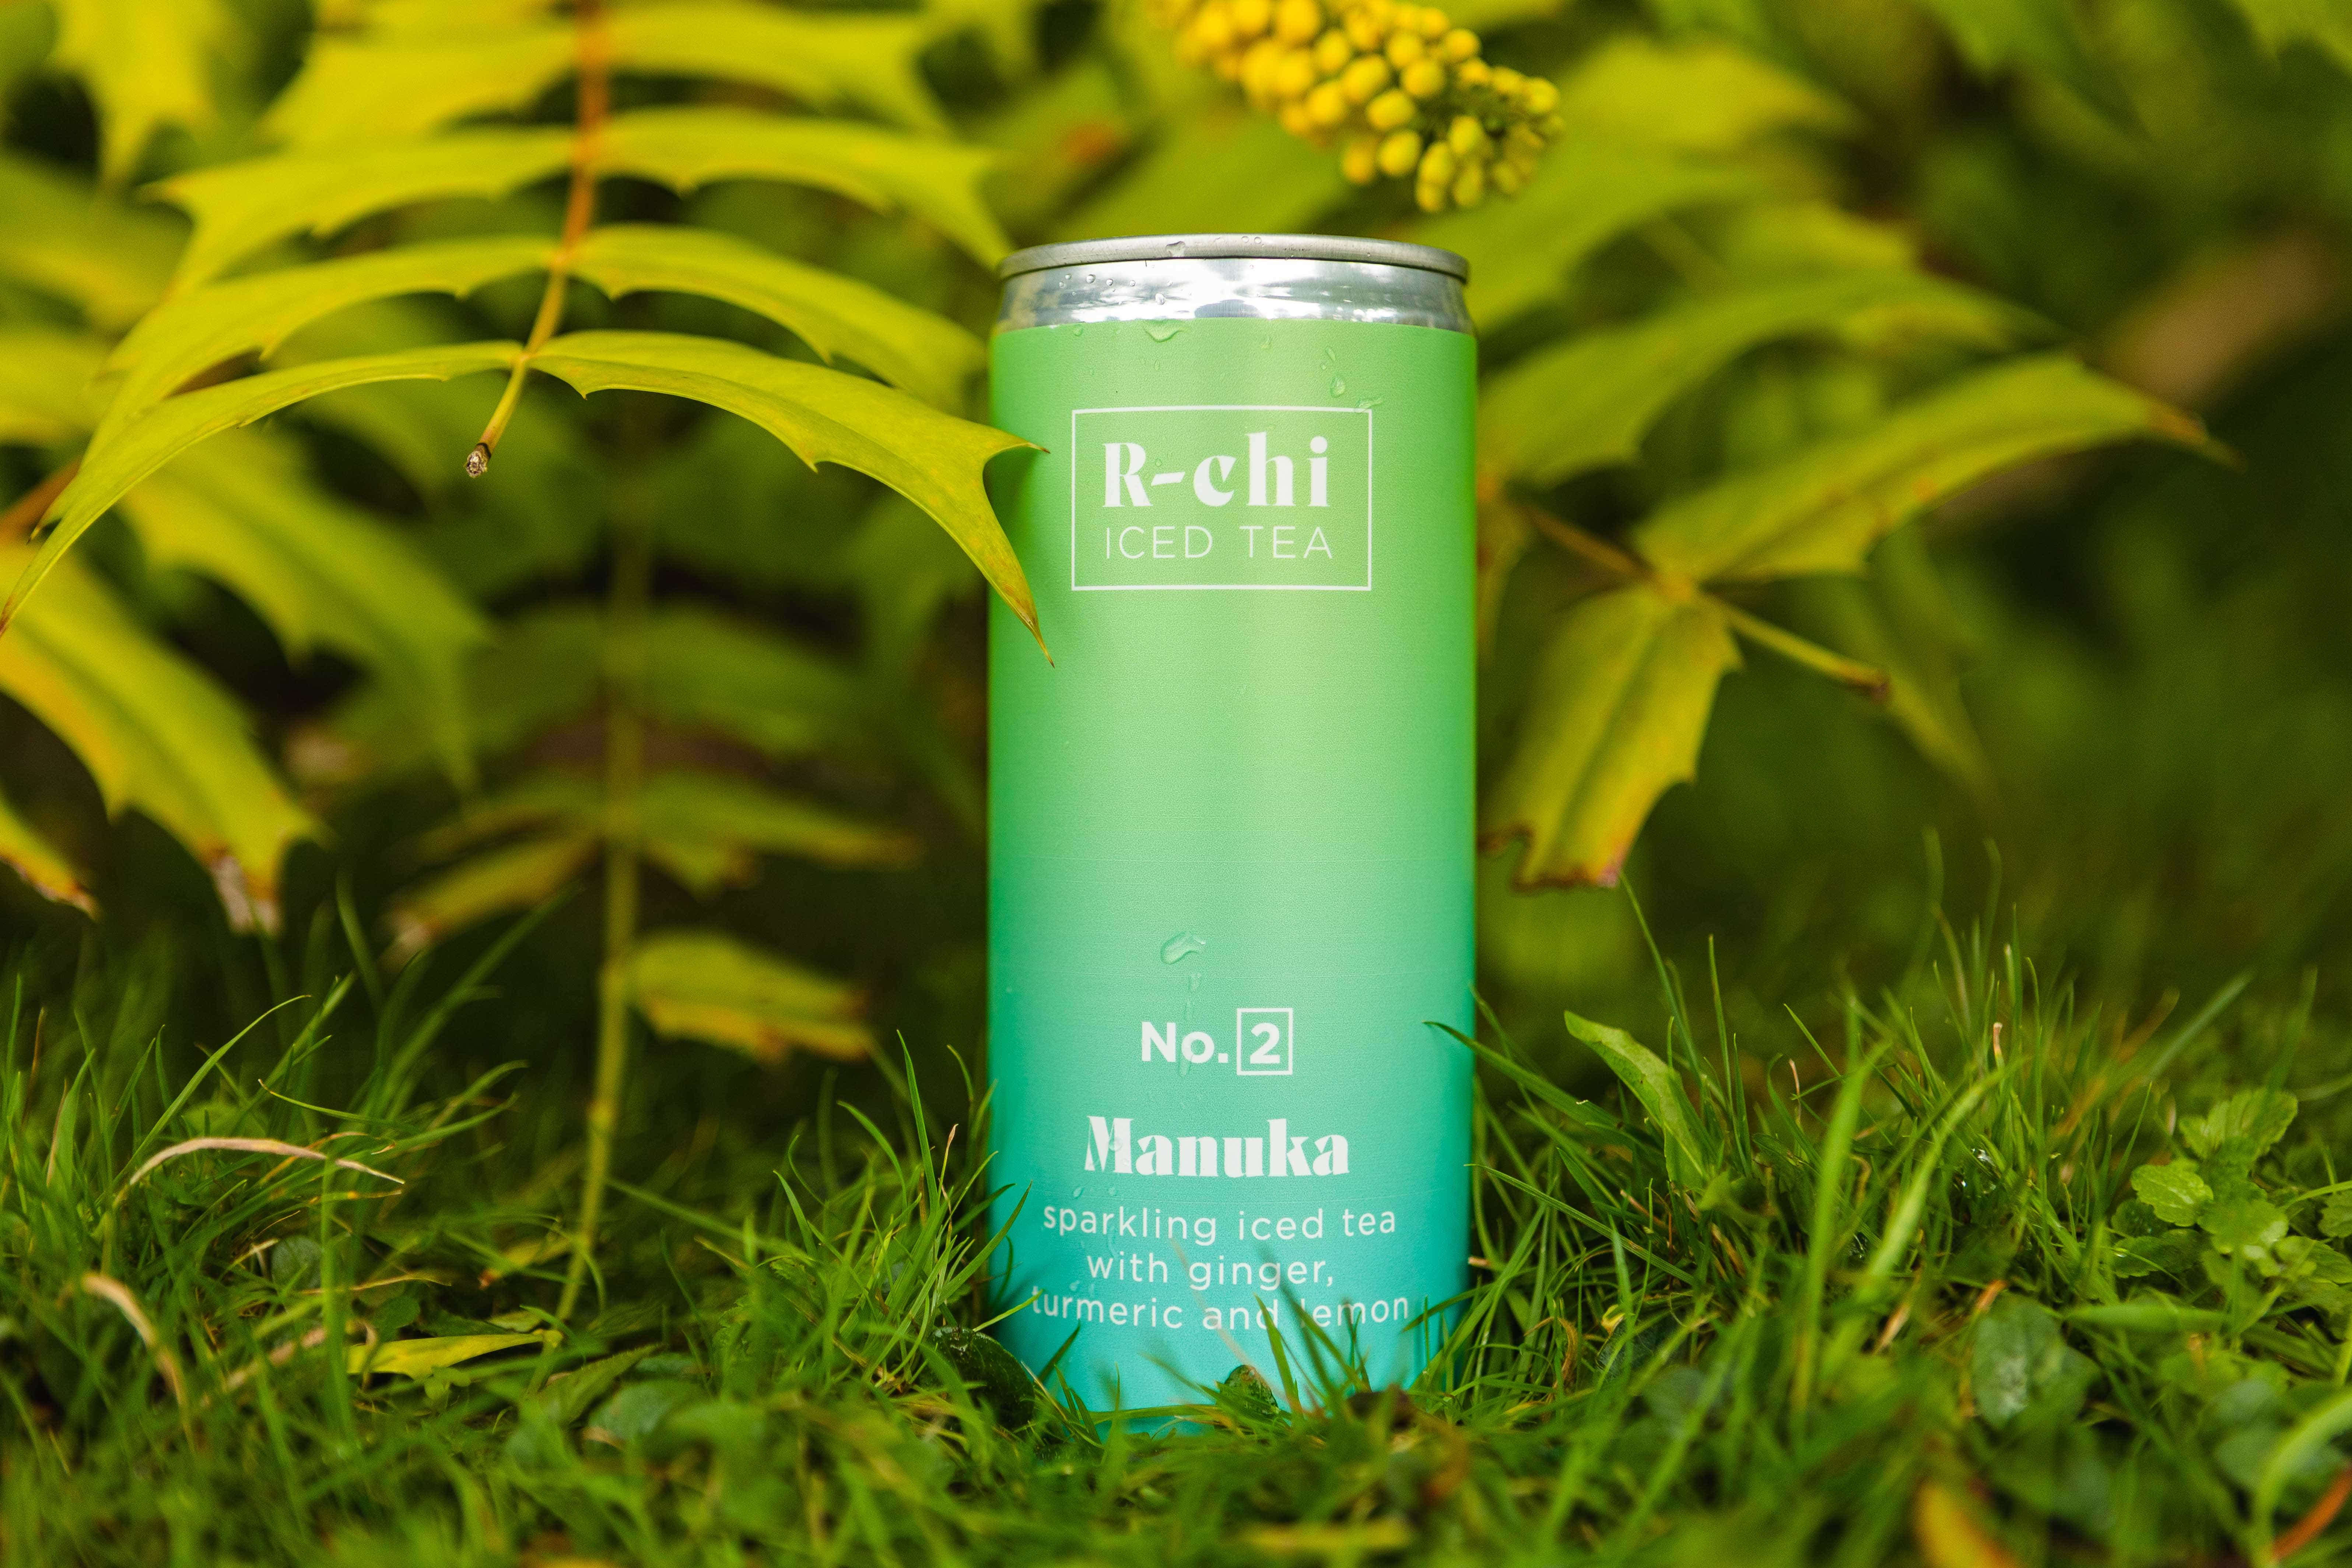 R-chi Iced tea drink Earl Grey flavour amongst green ferns. Brewed in Cornwall by Archie Boscawen.